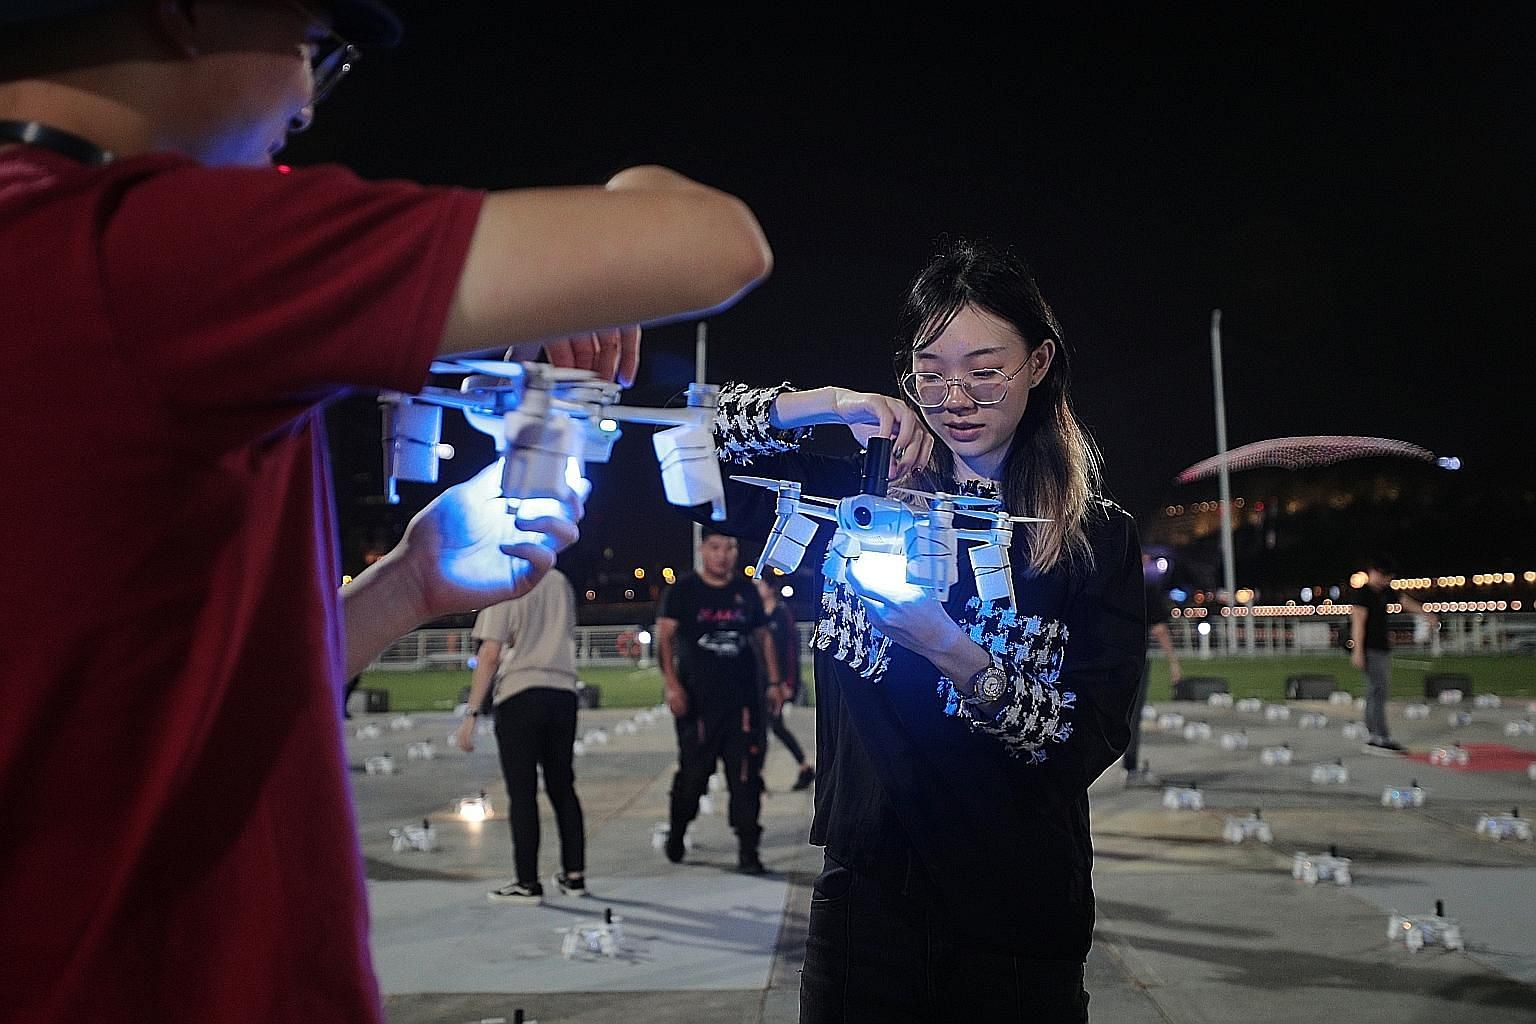 Star Island team members preparing the drones before a scheduled rehearsal at The Float @ Marina Bay last night. The aerial performance is backed by a 30-strong drone team, which includes 10 specialist pilots and engineers.